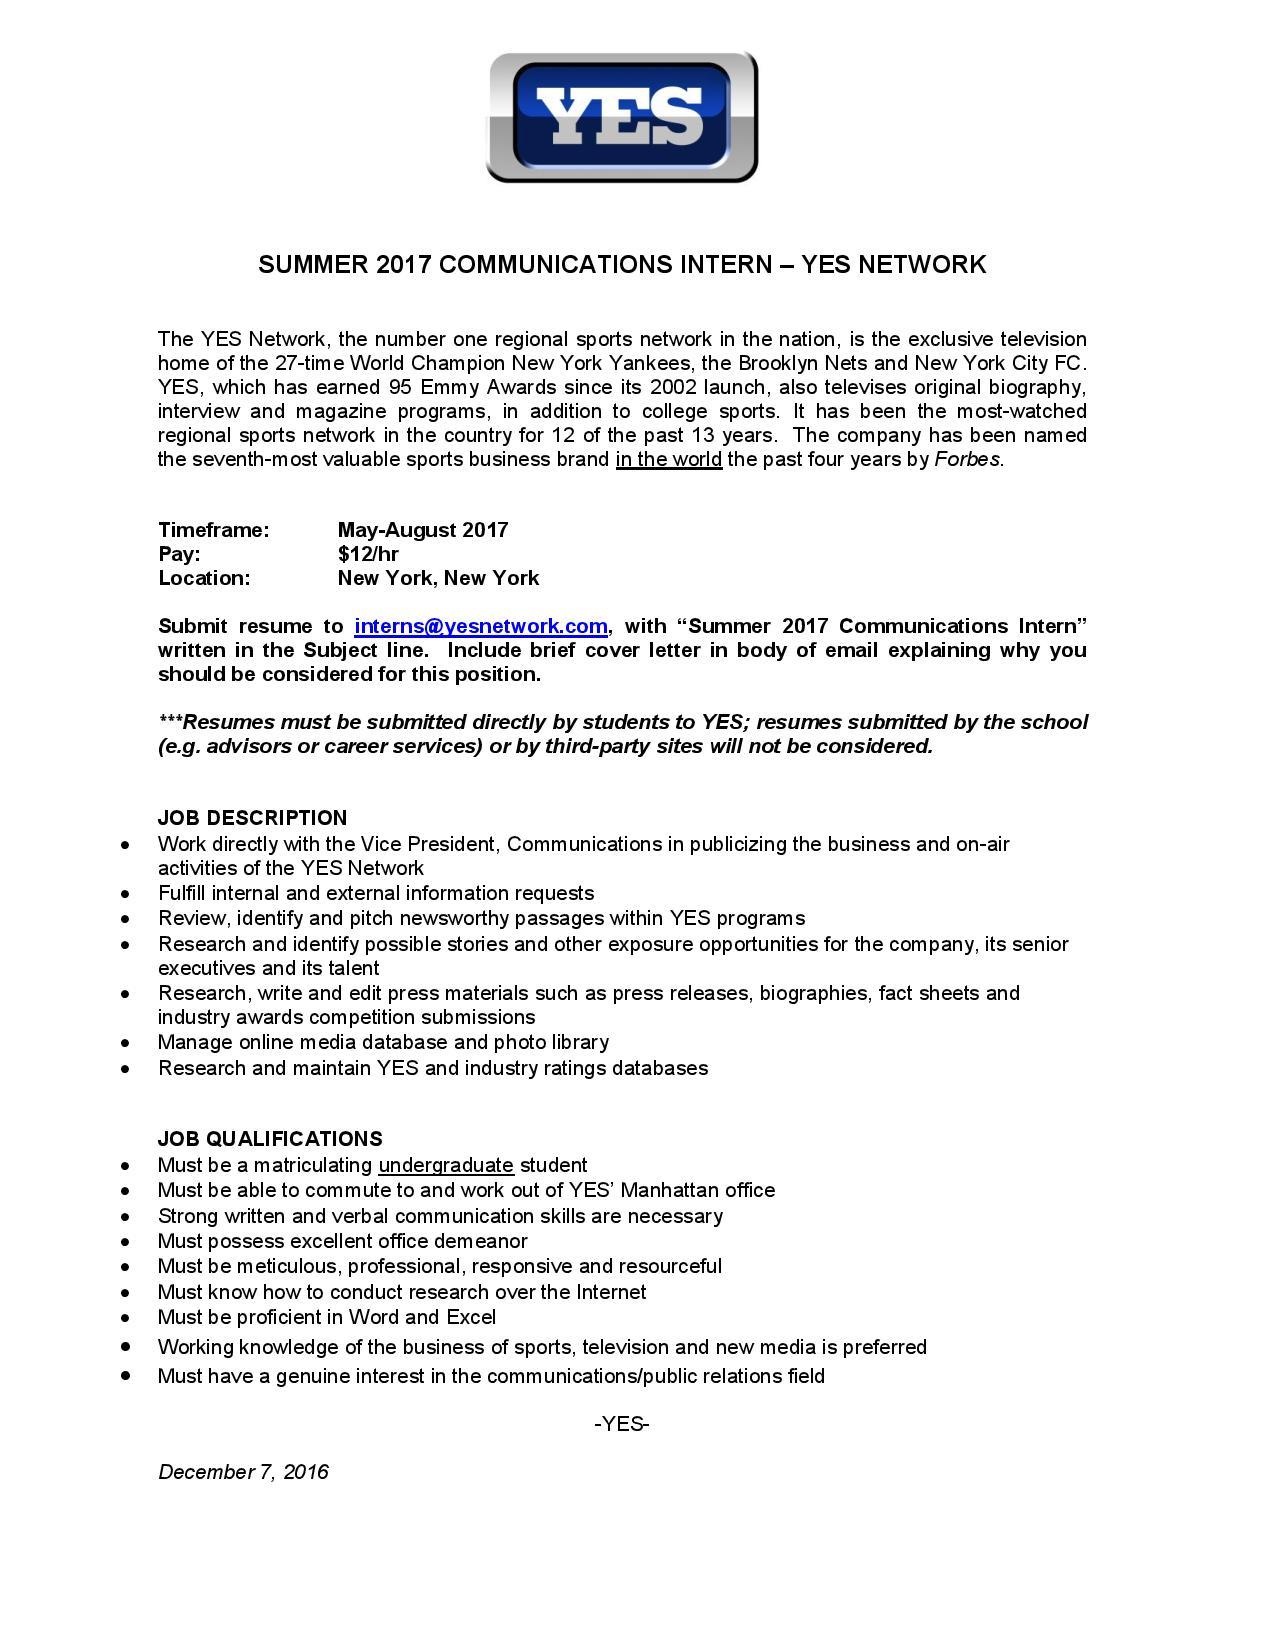 summer-2017-yes-network-communications-intern-posting-page-001